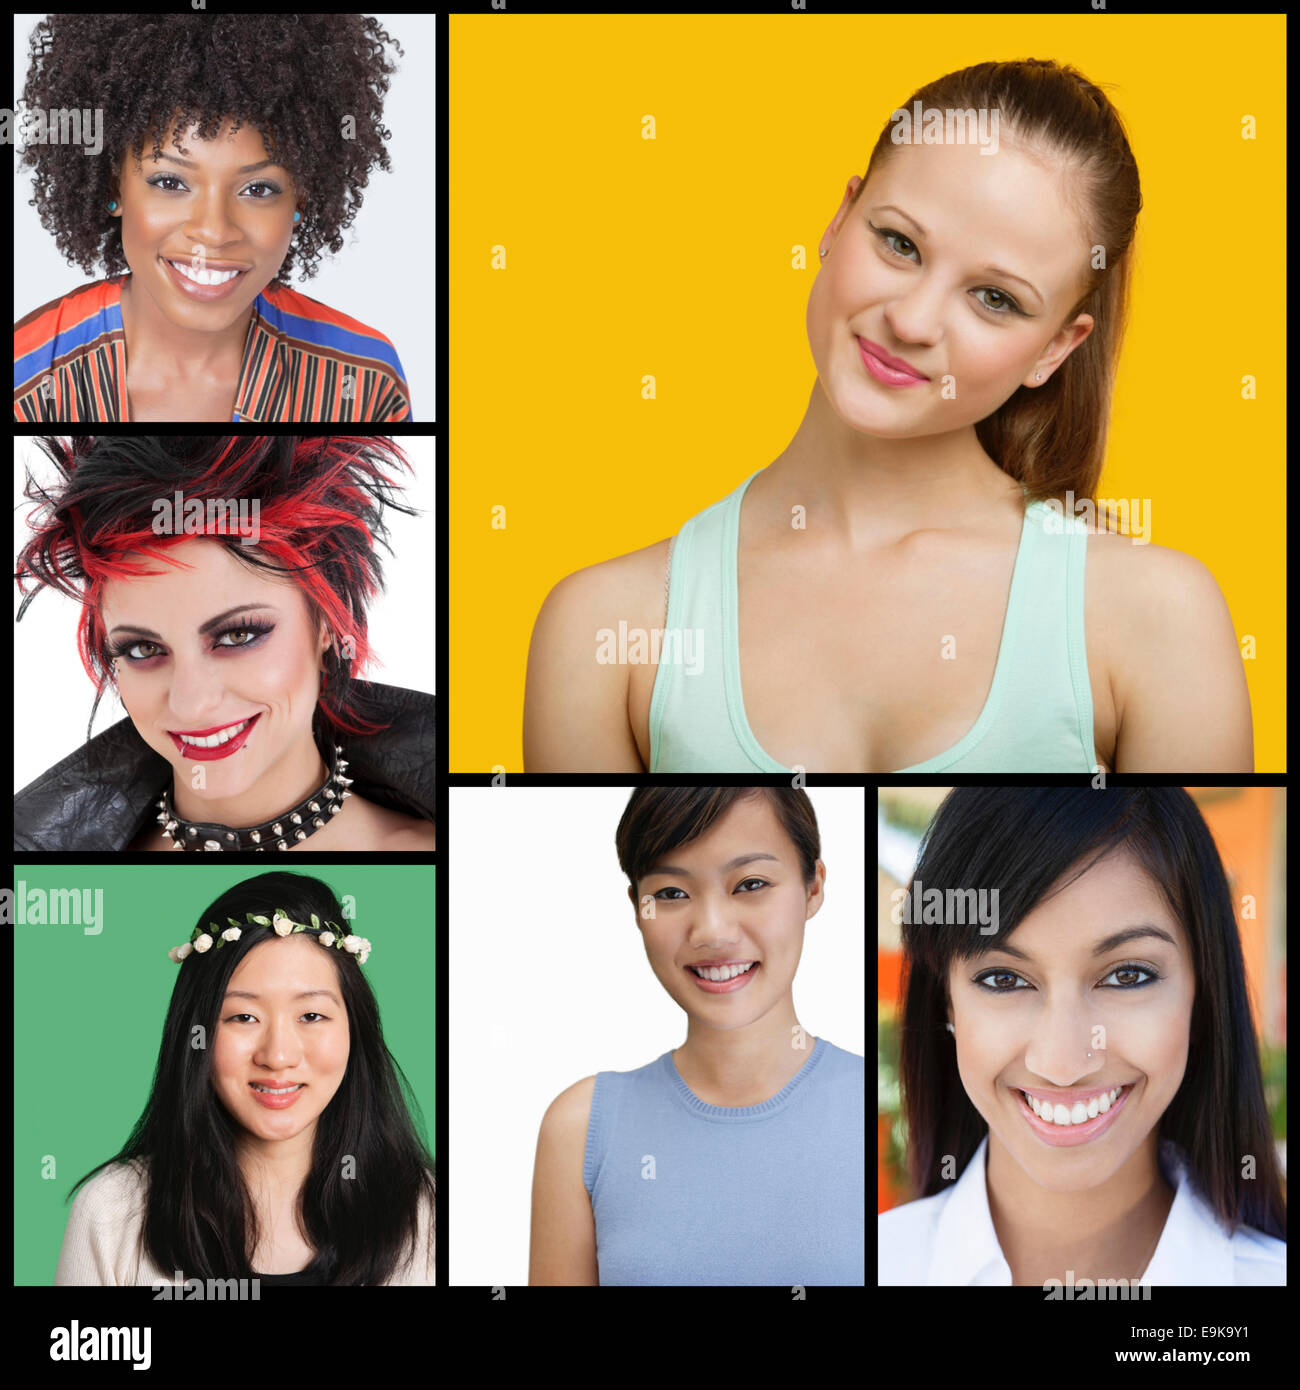 Collage of attractive women of different ethnicities - Stock Image